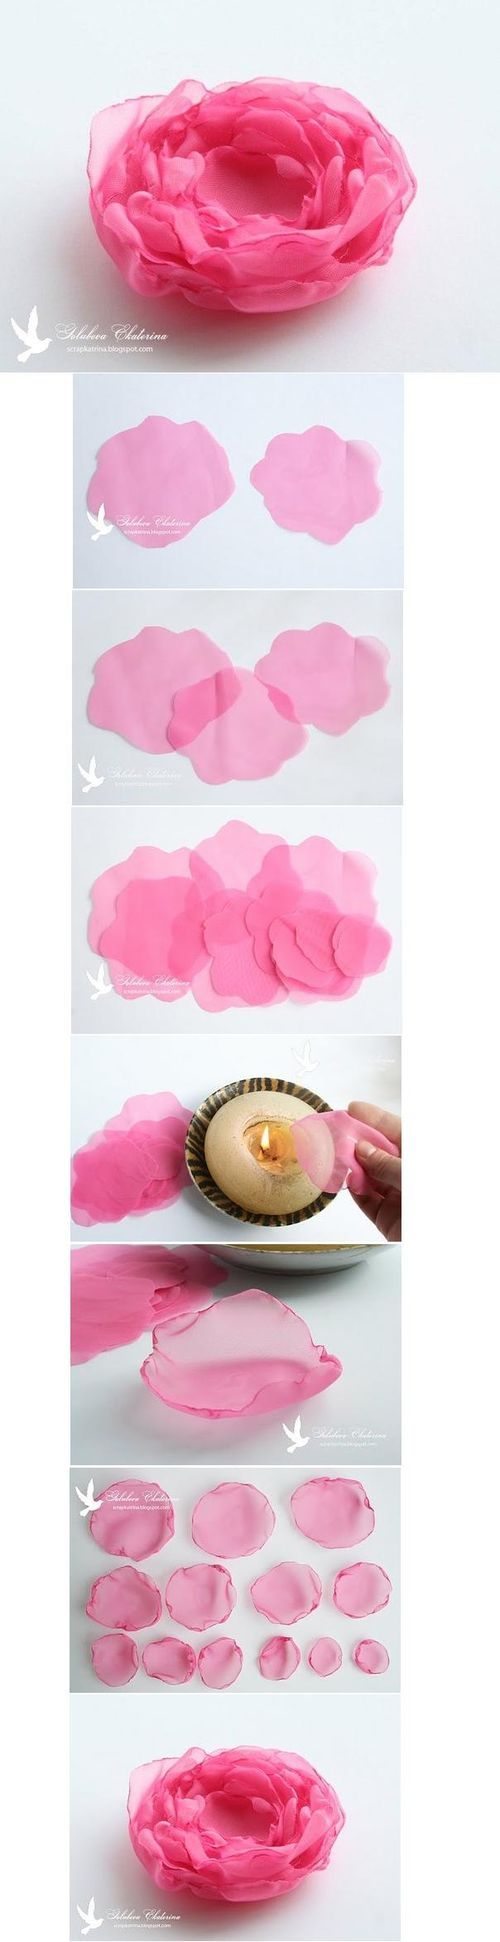 DIY Peonies Flowers- Would love to try something like this and then hang it on our white lights or something.